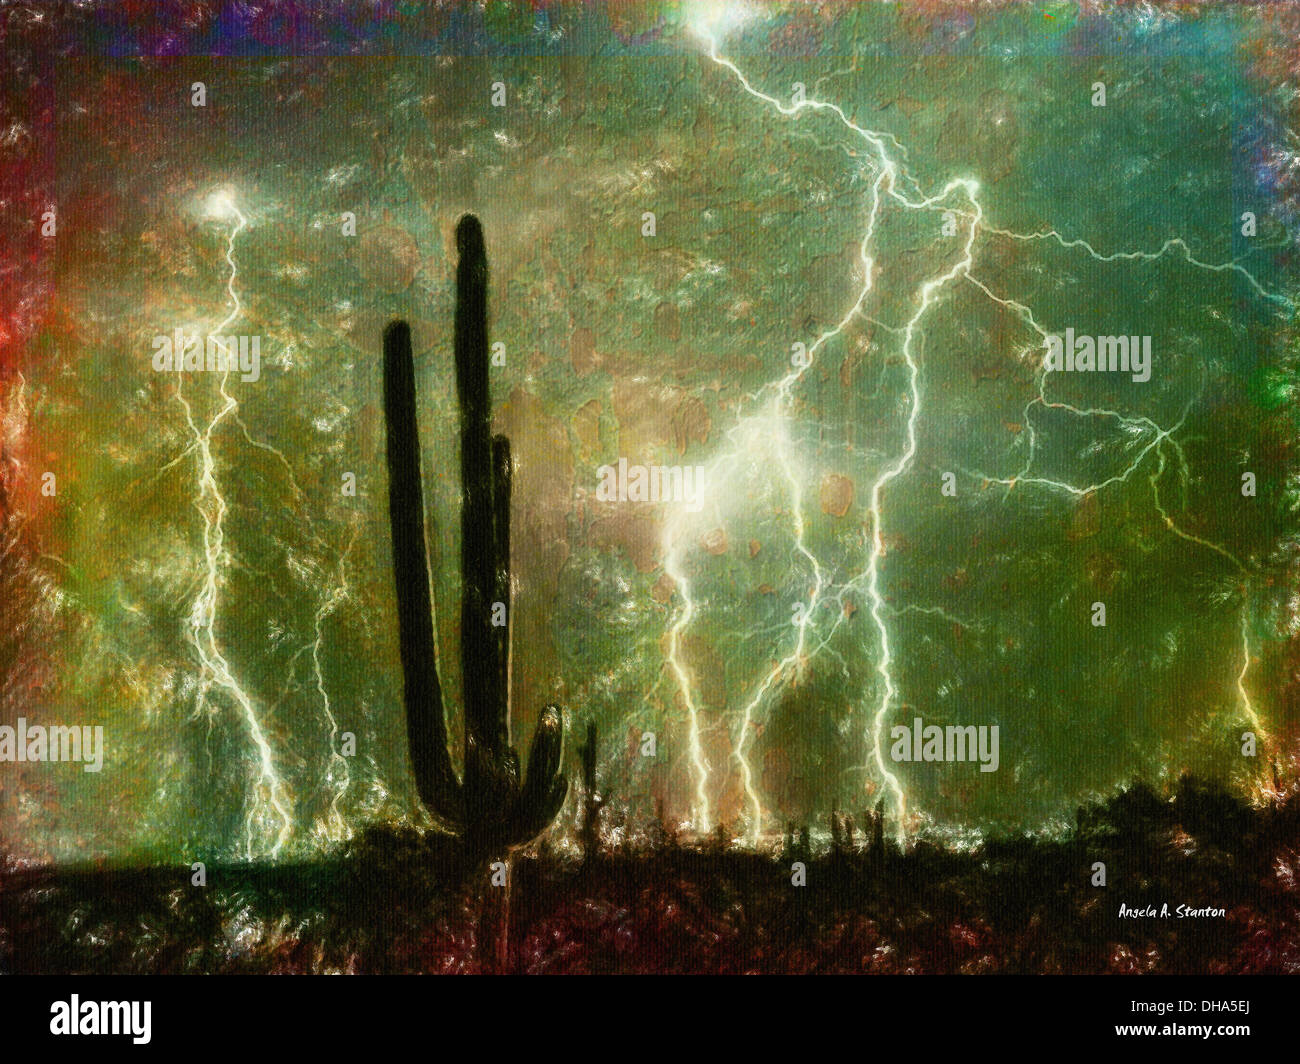 Computer Generated Image Of Lightening Strikes From Cloud To Ground And A Cactus Plant In The Foreground - Stock Image